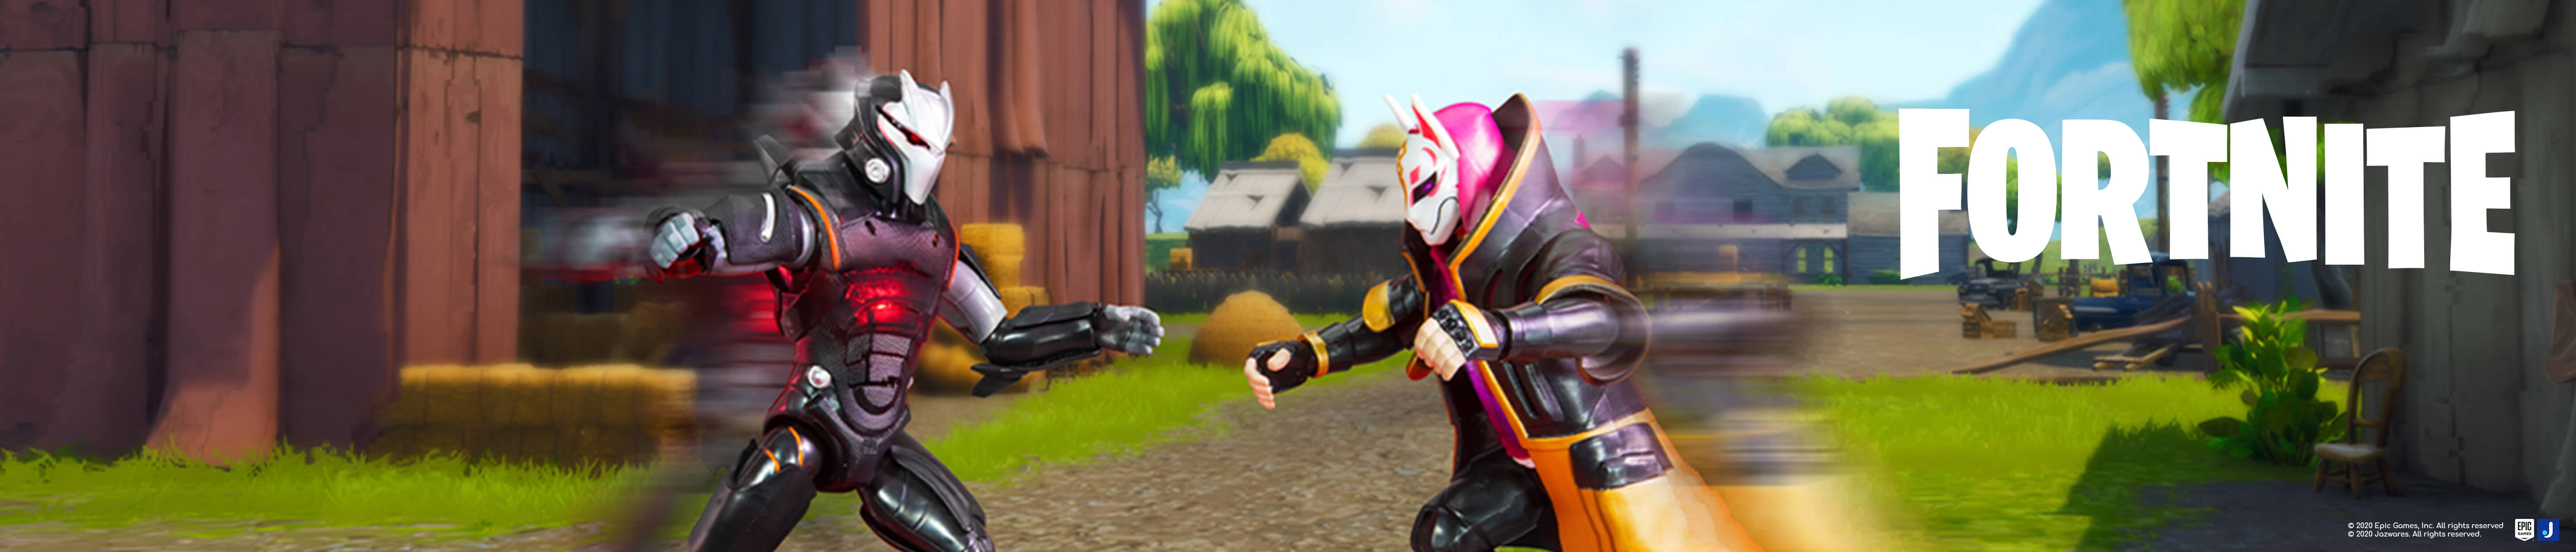 Fortnite_Homepage_Banner_NEW-MARCH-2020-Brand Top Page 1400x300.jpg